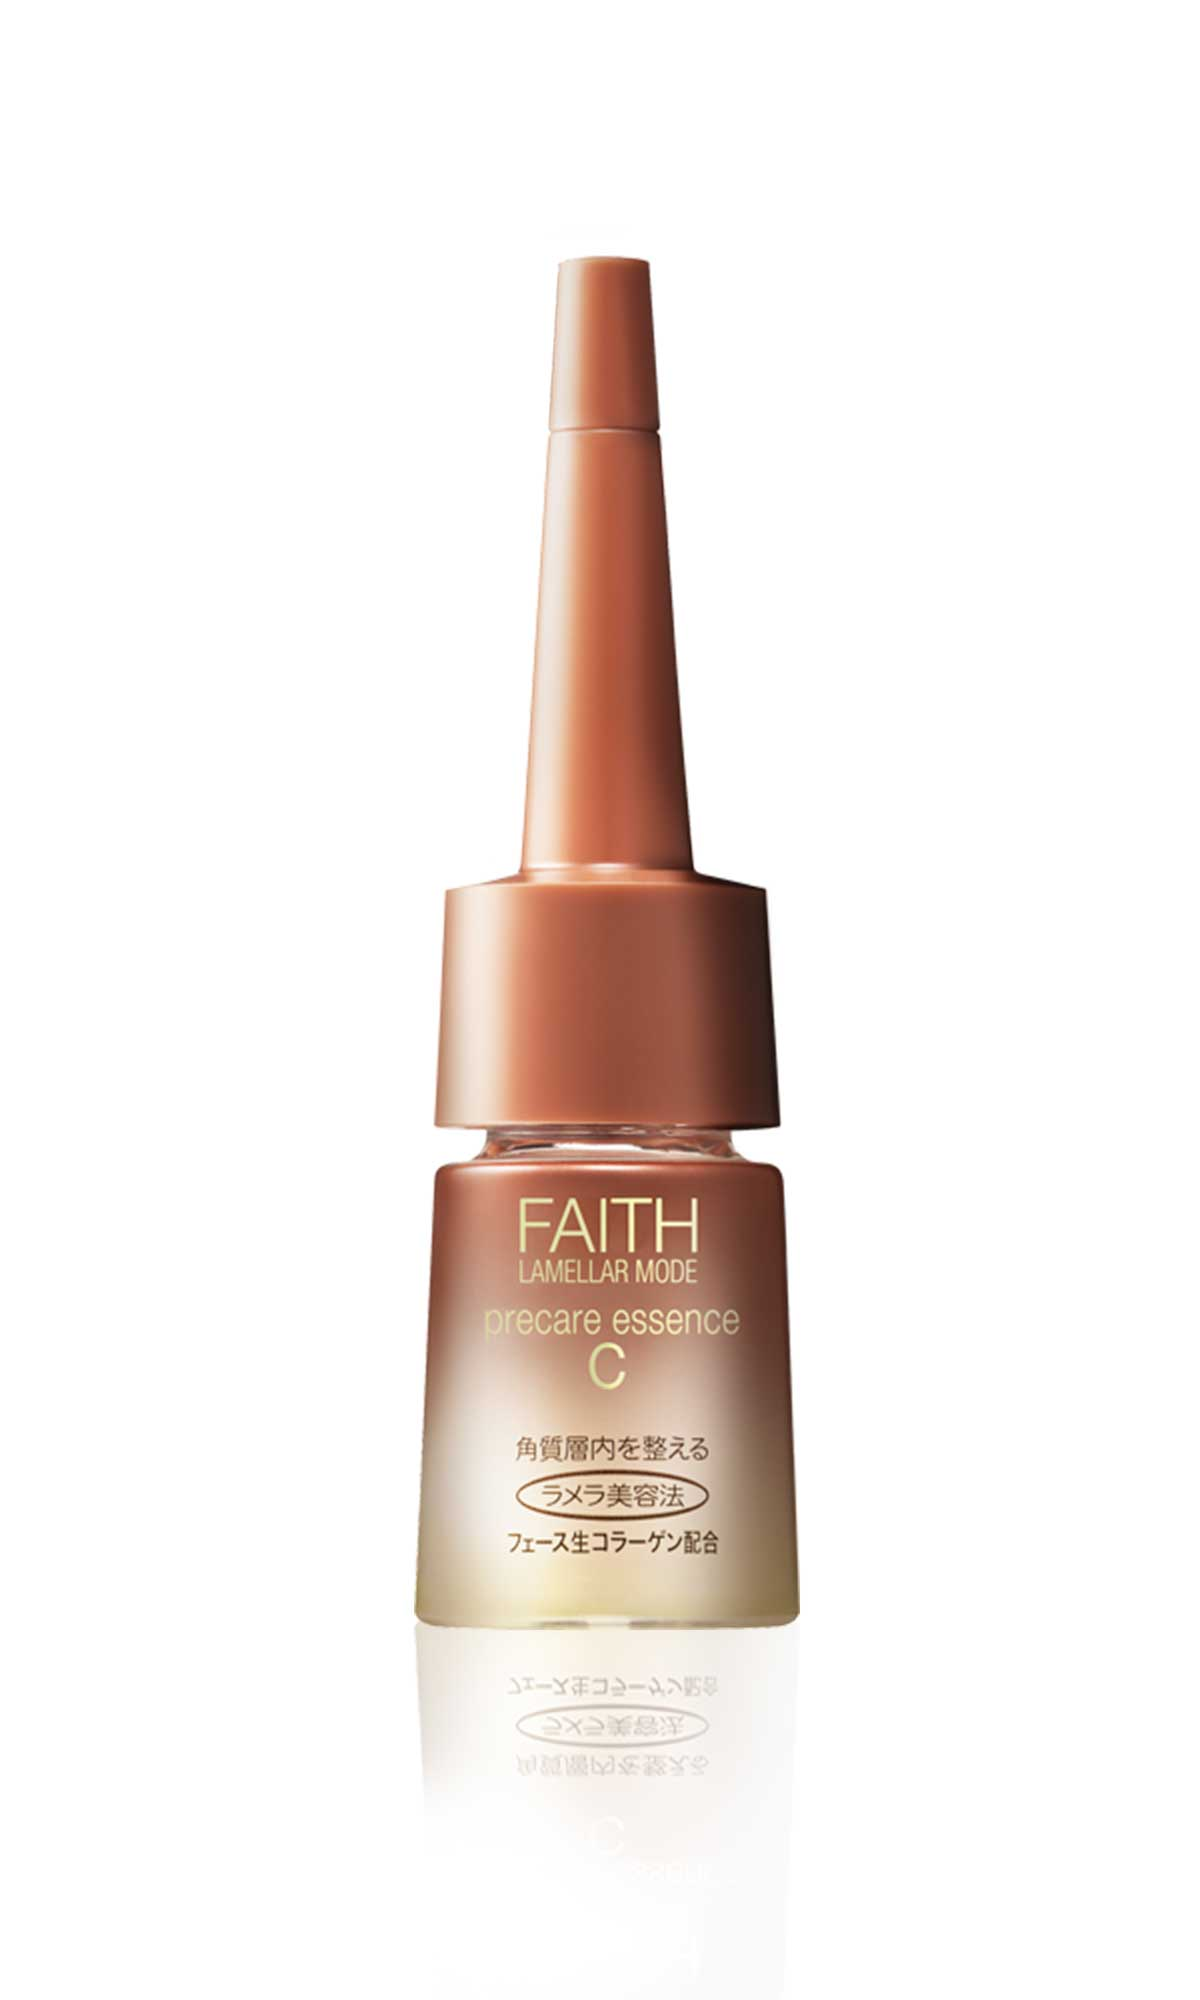 FAITH Precare Essence C The Innovative Collagen Treatment